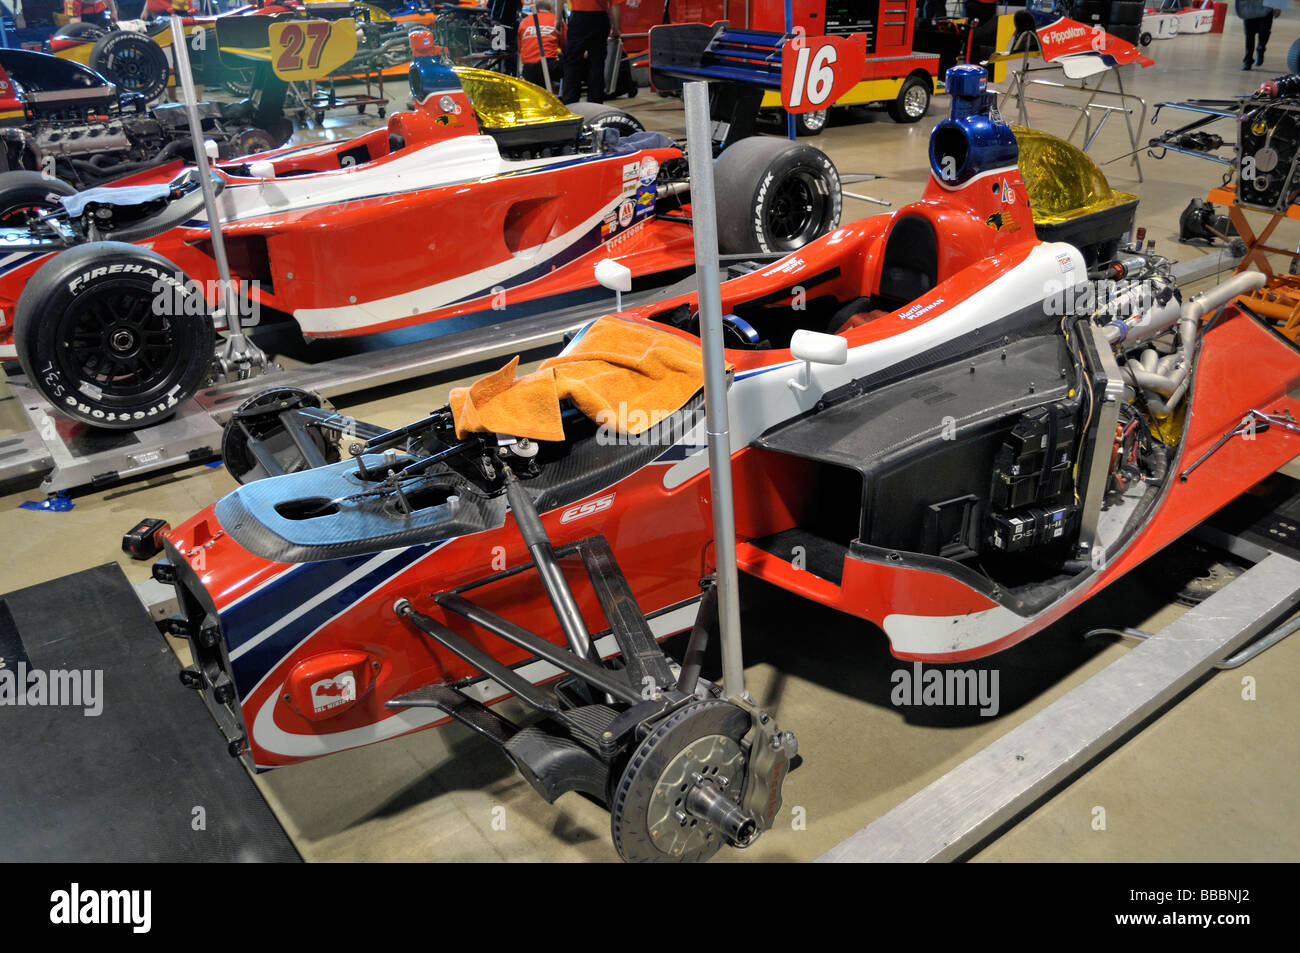 Colorful Indy race cars partially disassembled - Stock Image